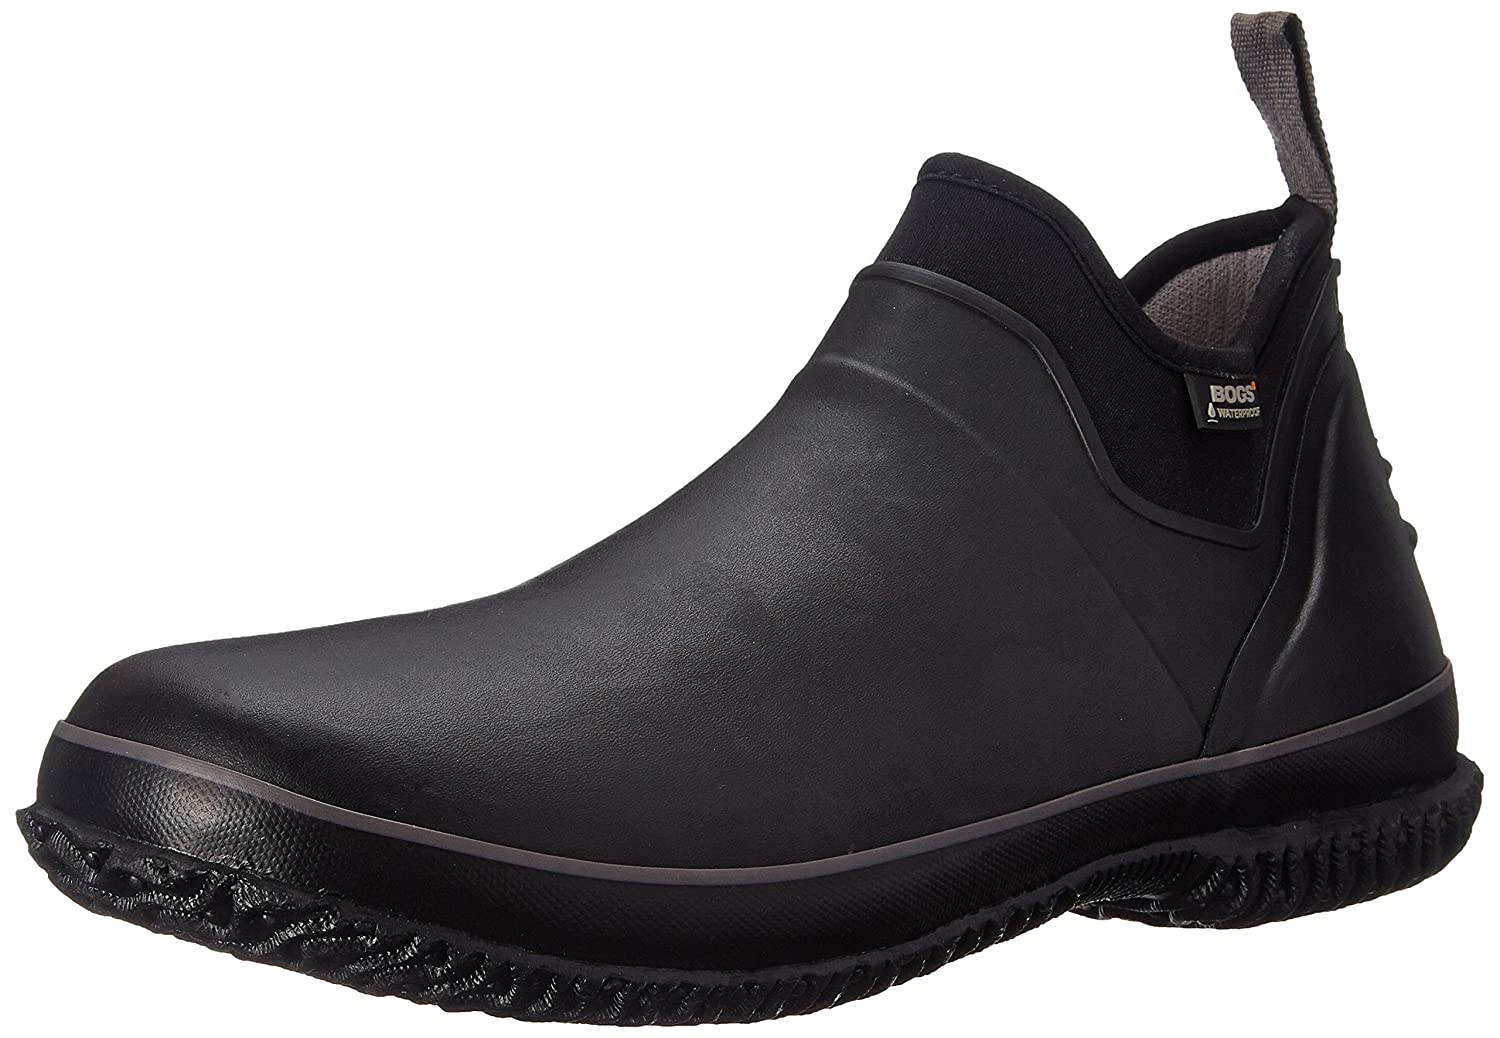 Bogs Men's Urban Farmer Rain Boot Urban Farmer-M